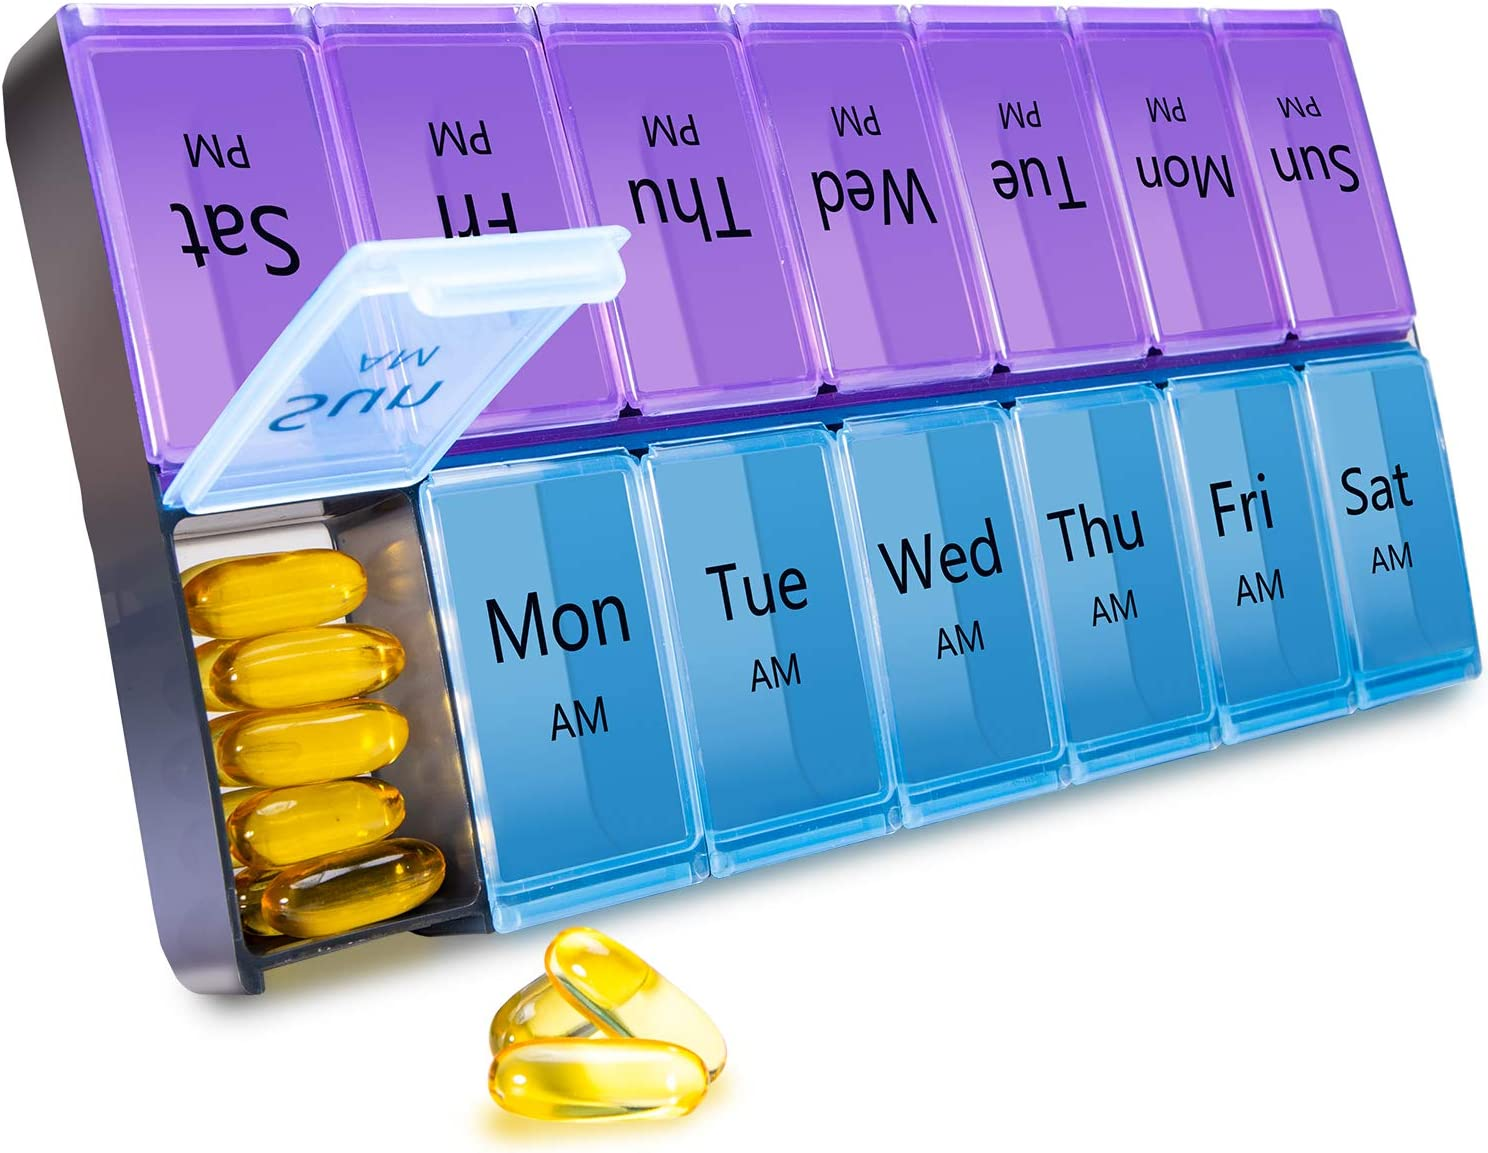 7 Days AM PM Pill Organizer-Large Weekly Pills Case, BPA-Free Pills Box Container Cases, Morning and Night Pill Boxes with Huge Compartments Design to Hold Vitamin, Medicine (Purple-Blue)